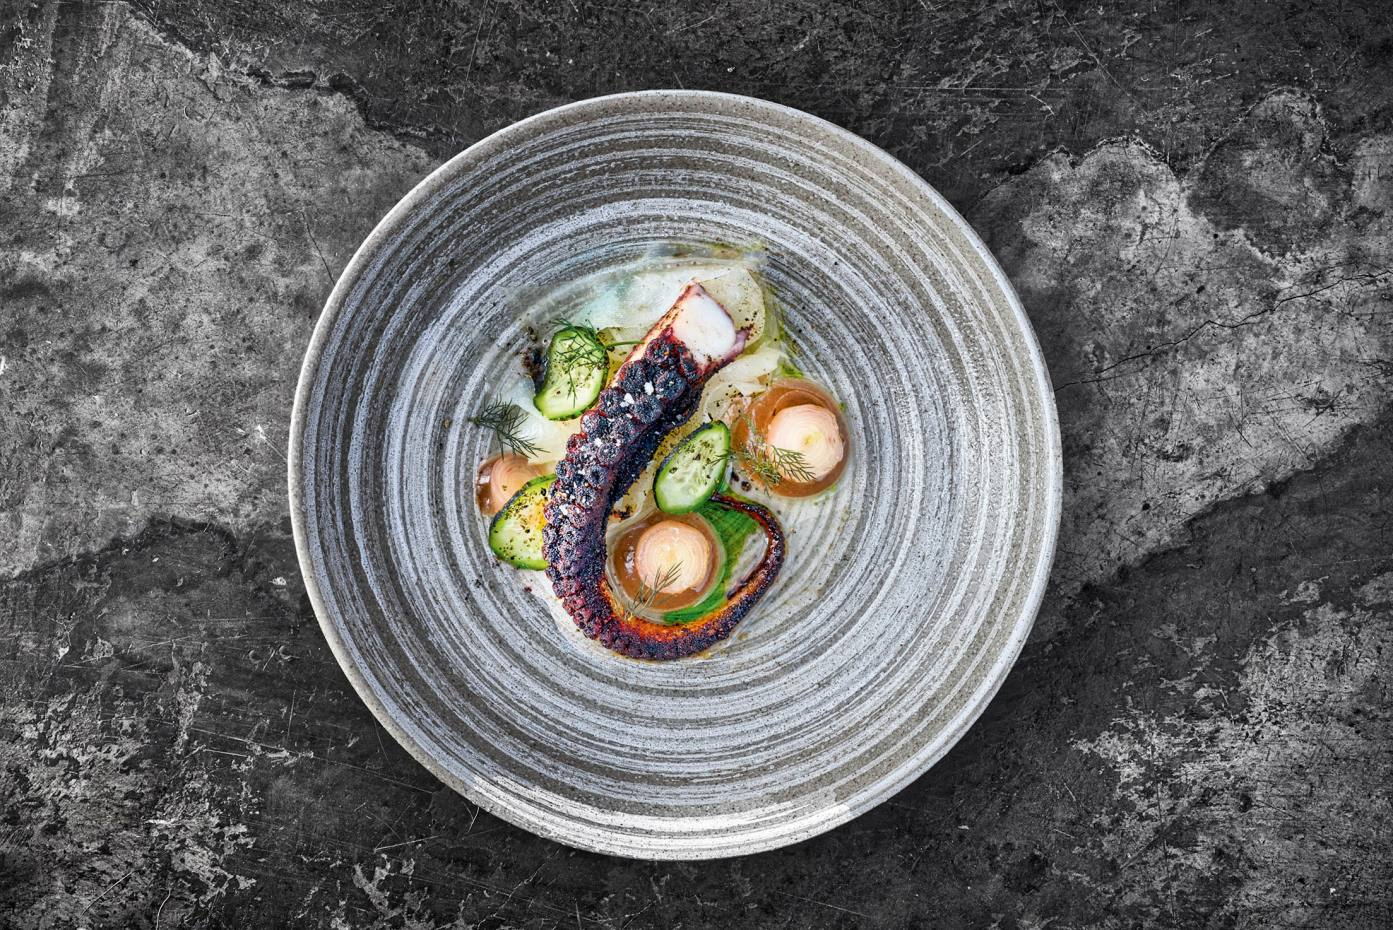 Roast octopus is on the menu at 108 Garage